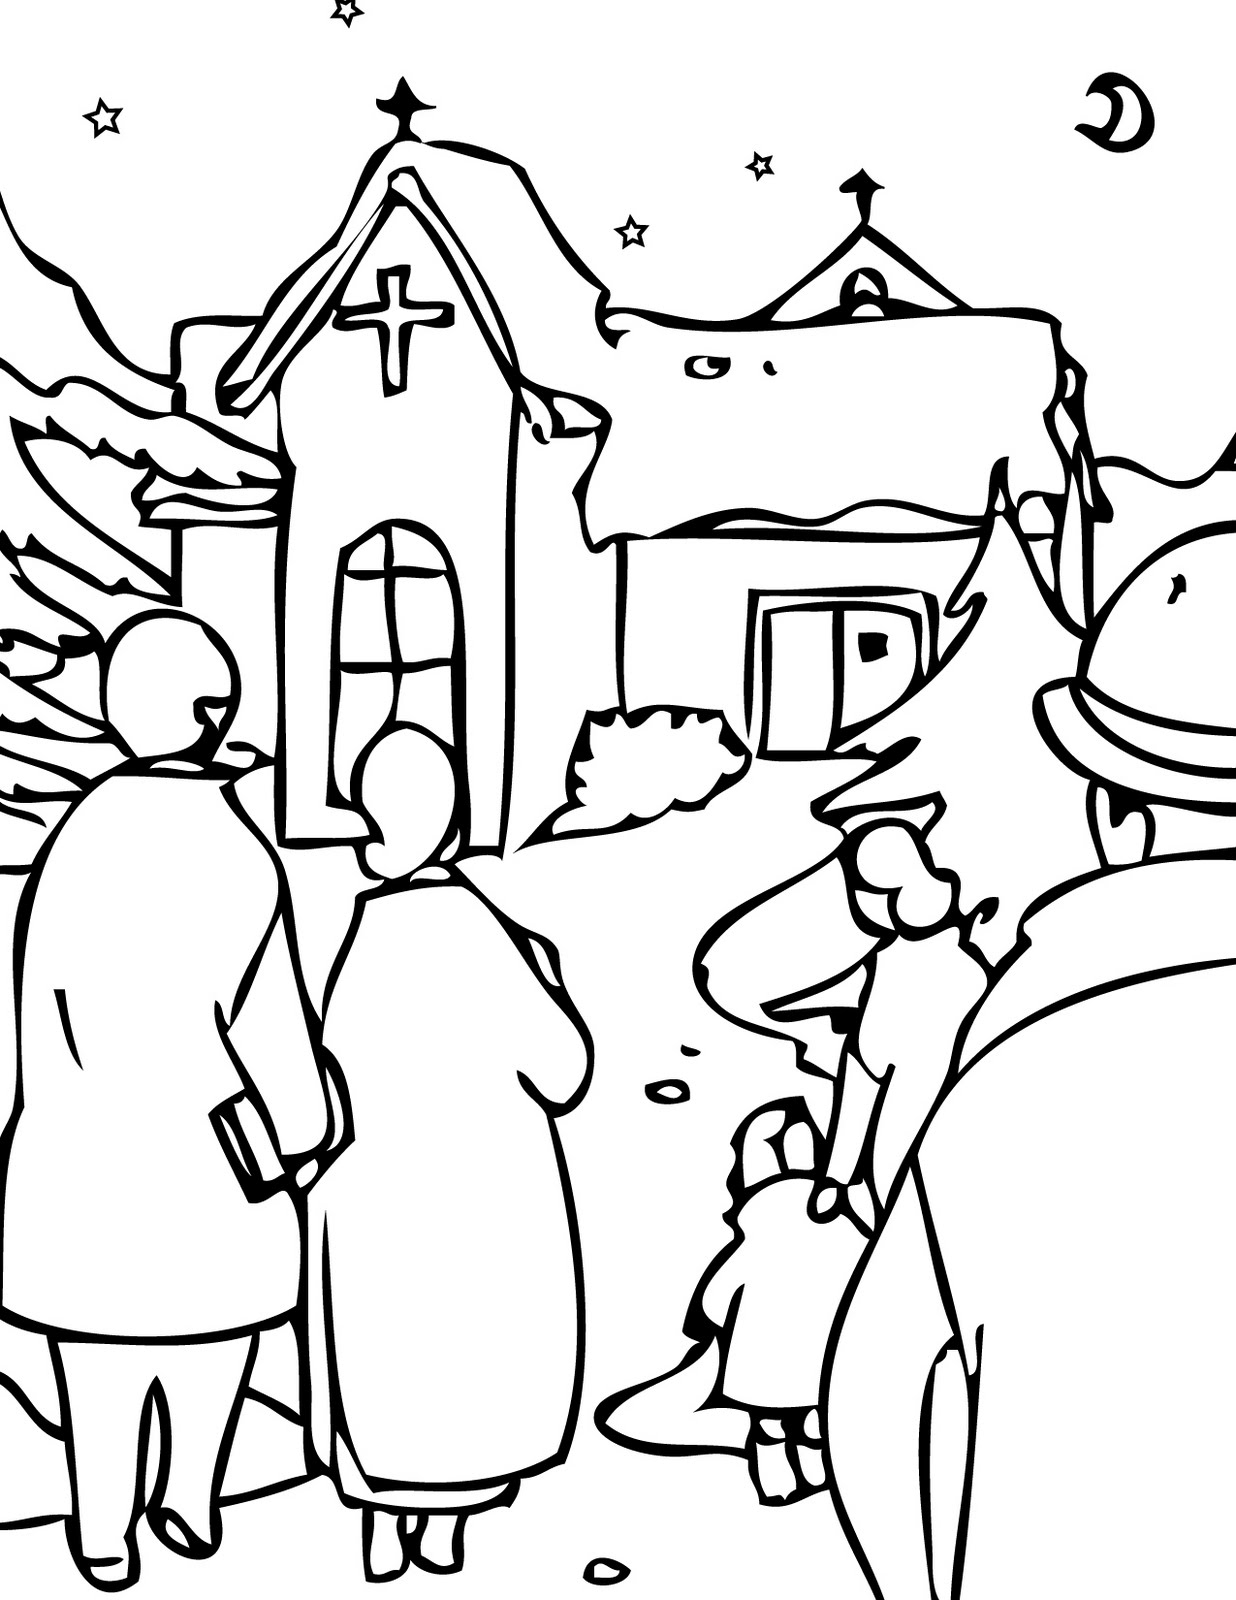 coloring sheets for christmas cute animal christmas coloring pages download and print for sheets christmas coloring